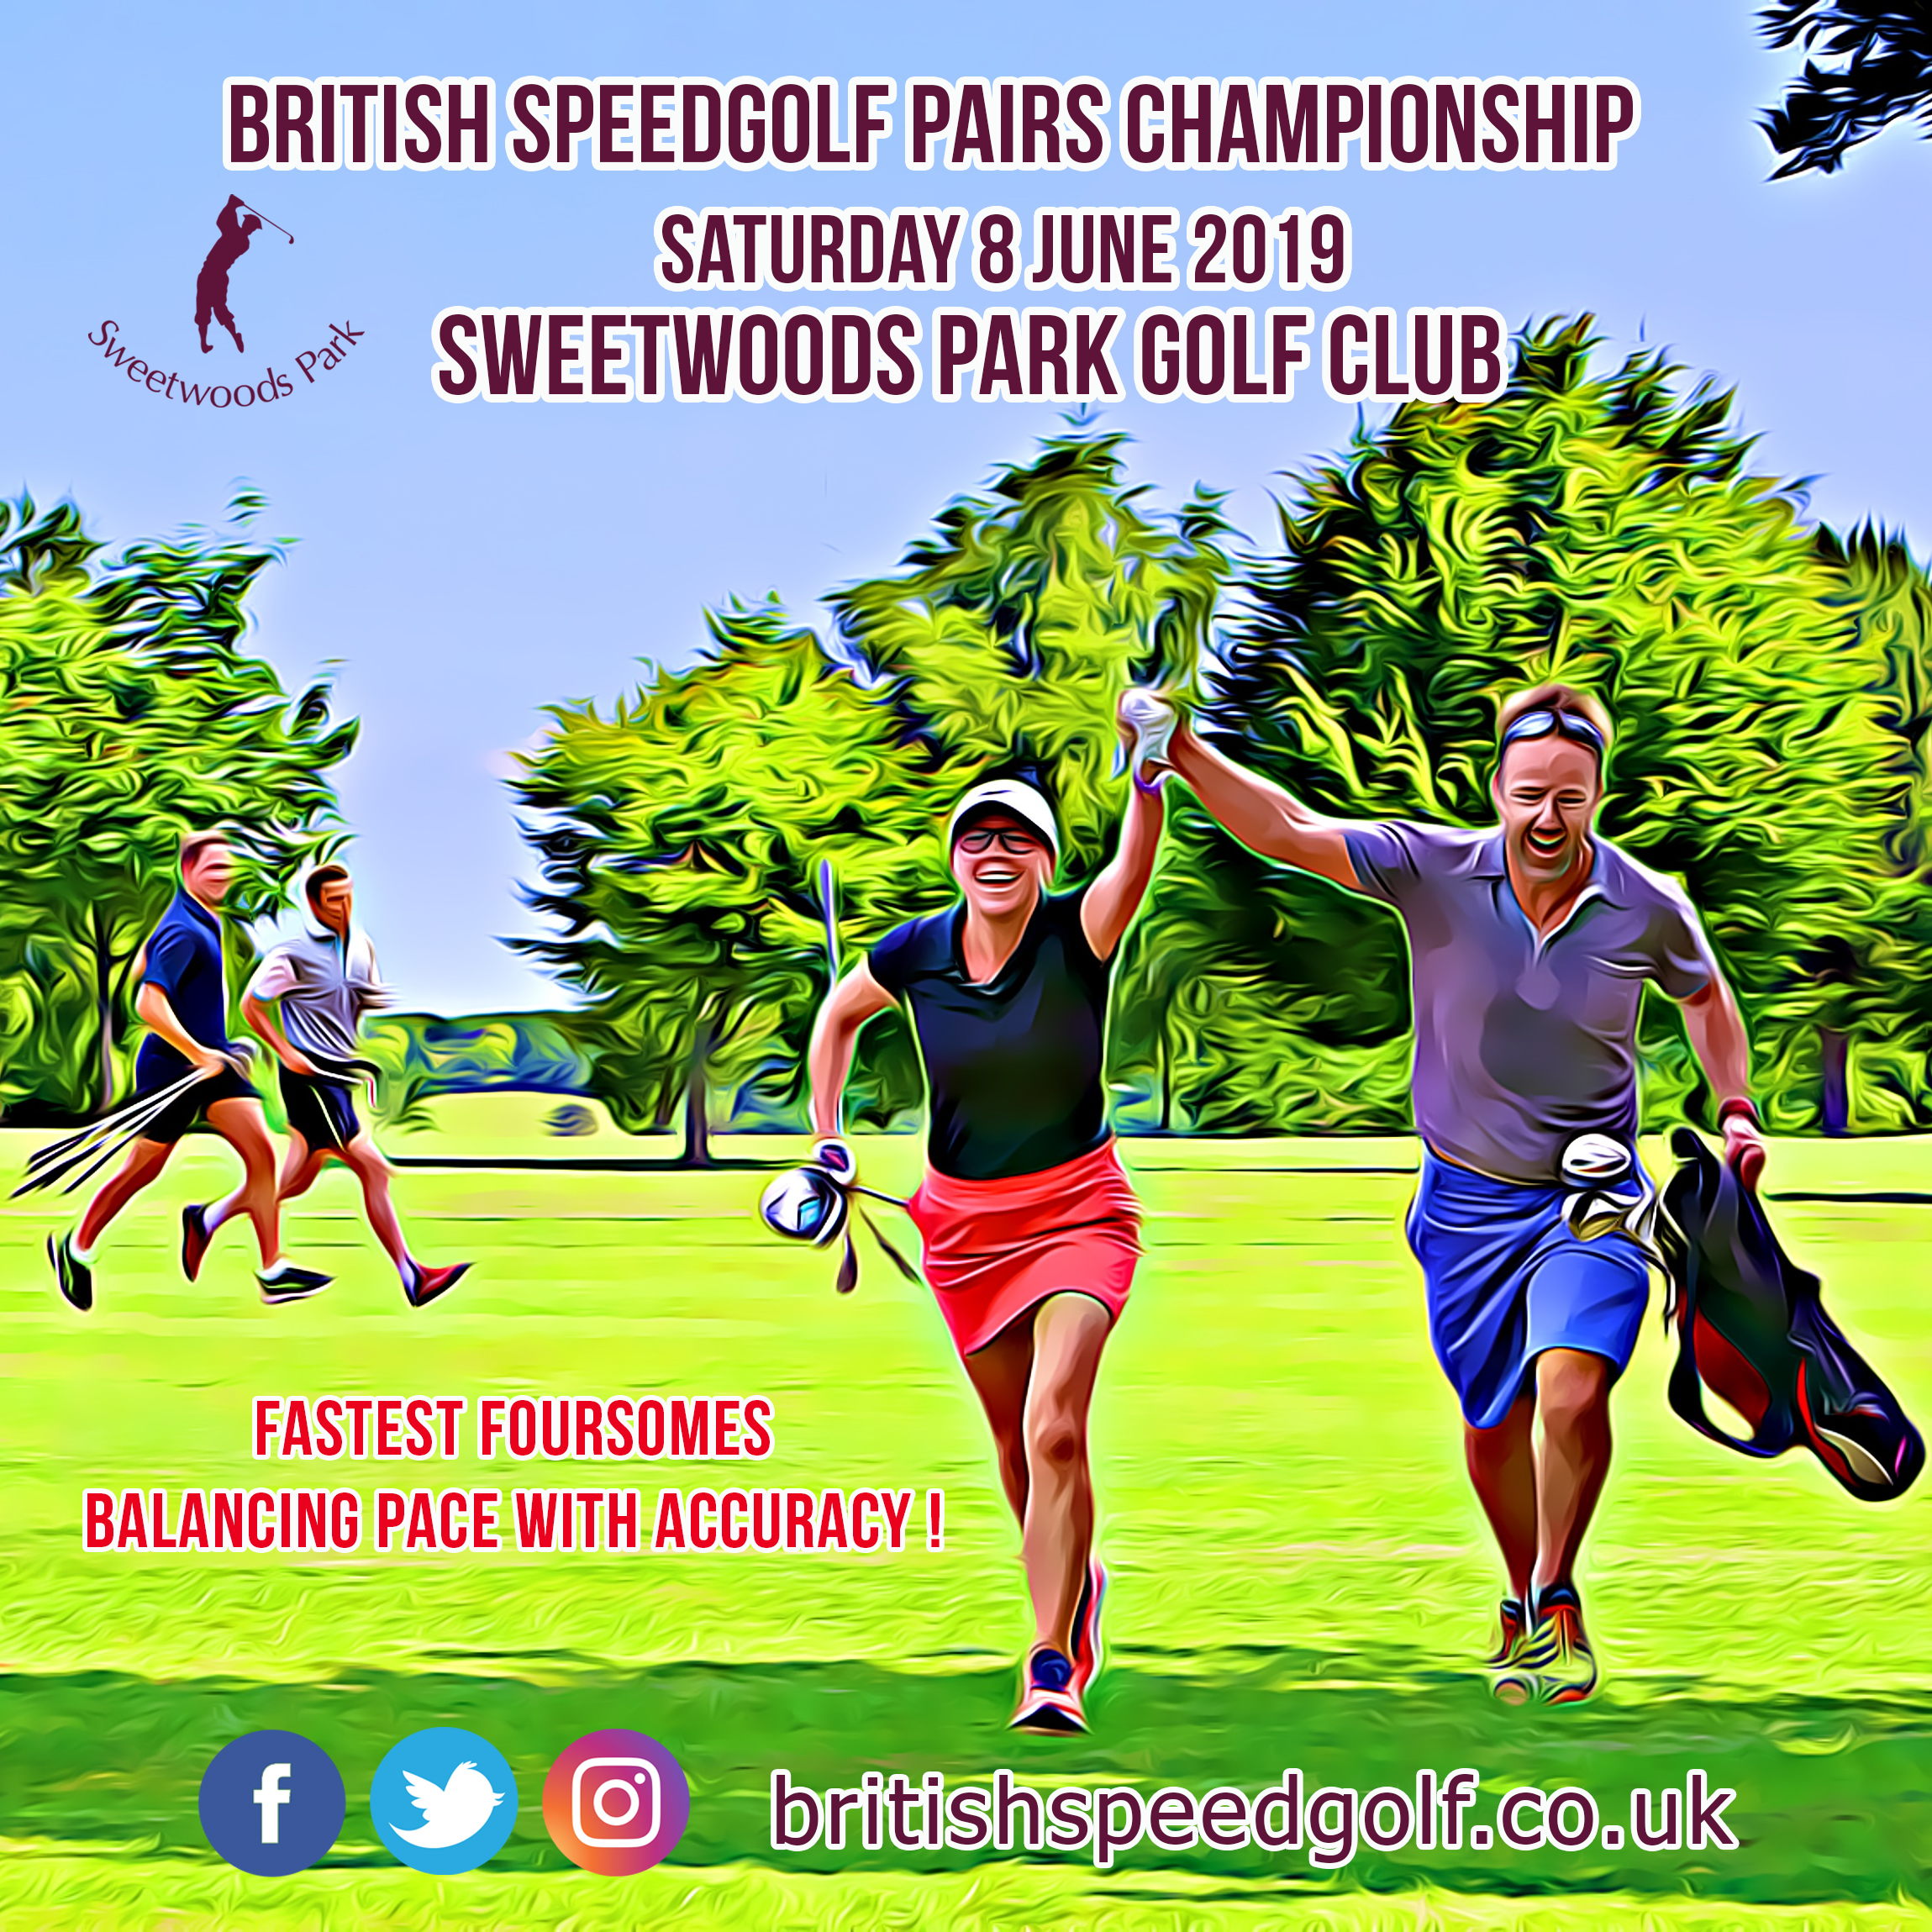 2019 British Speedgolf Pairs Championship announced